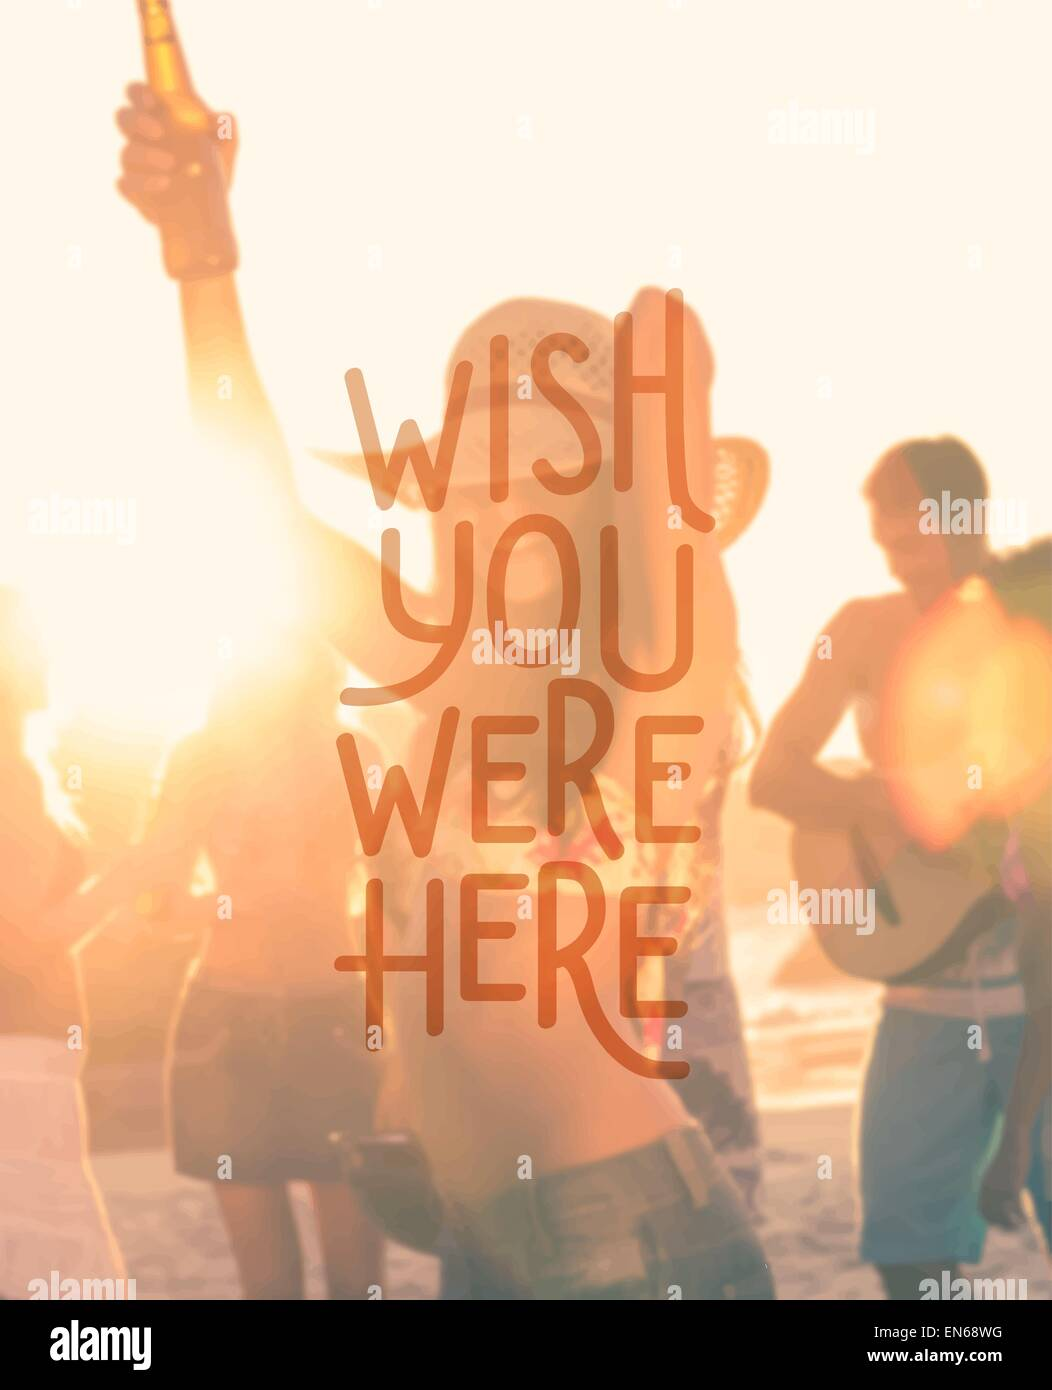 Wish You Were Here vector Photo Stock